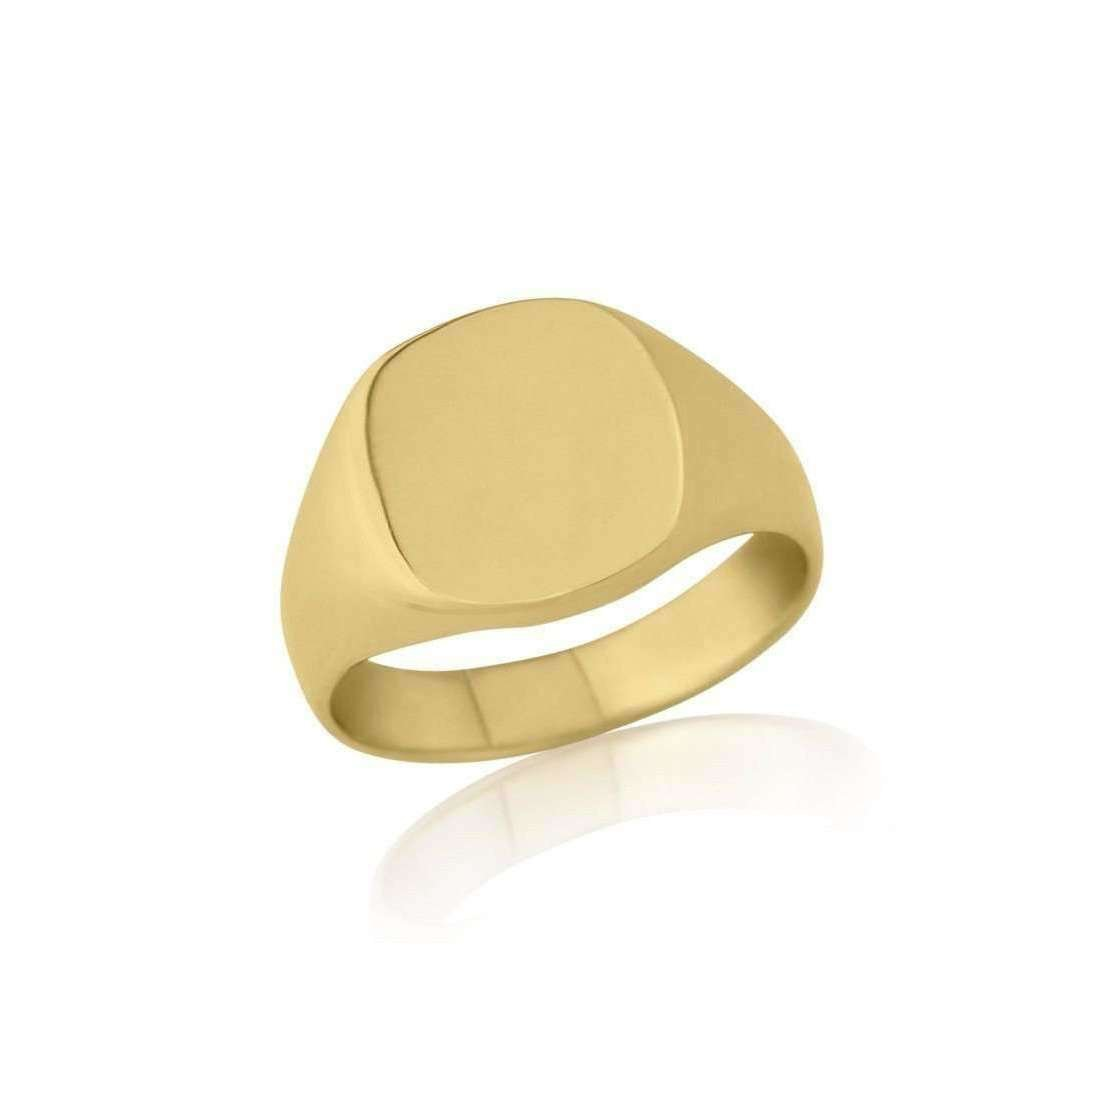 Cushion-shaped 9kt Yellow Gold Heavy Weight Signet Ring